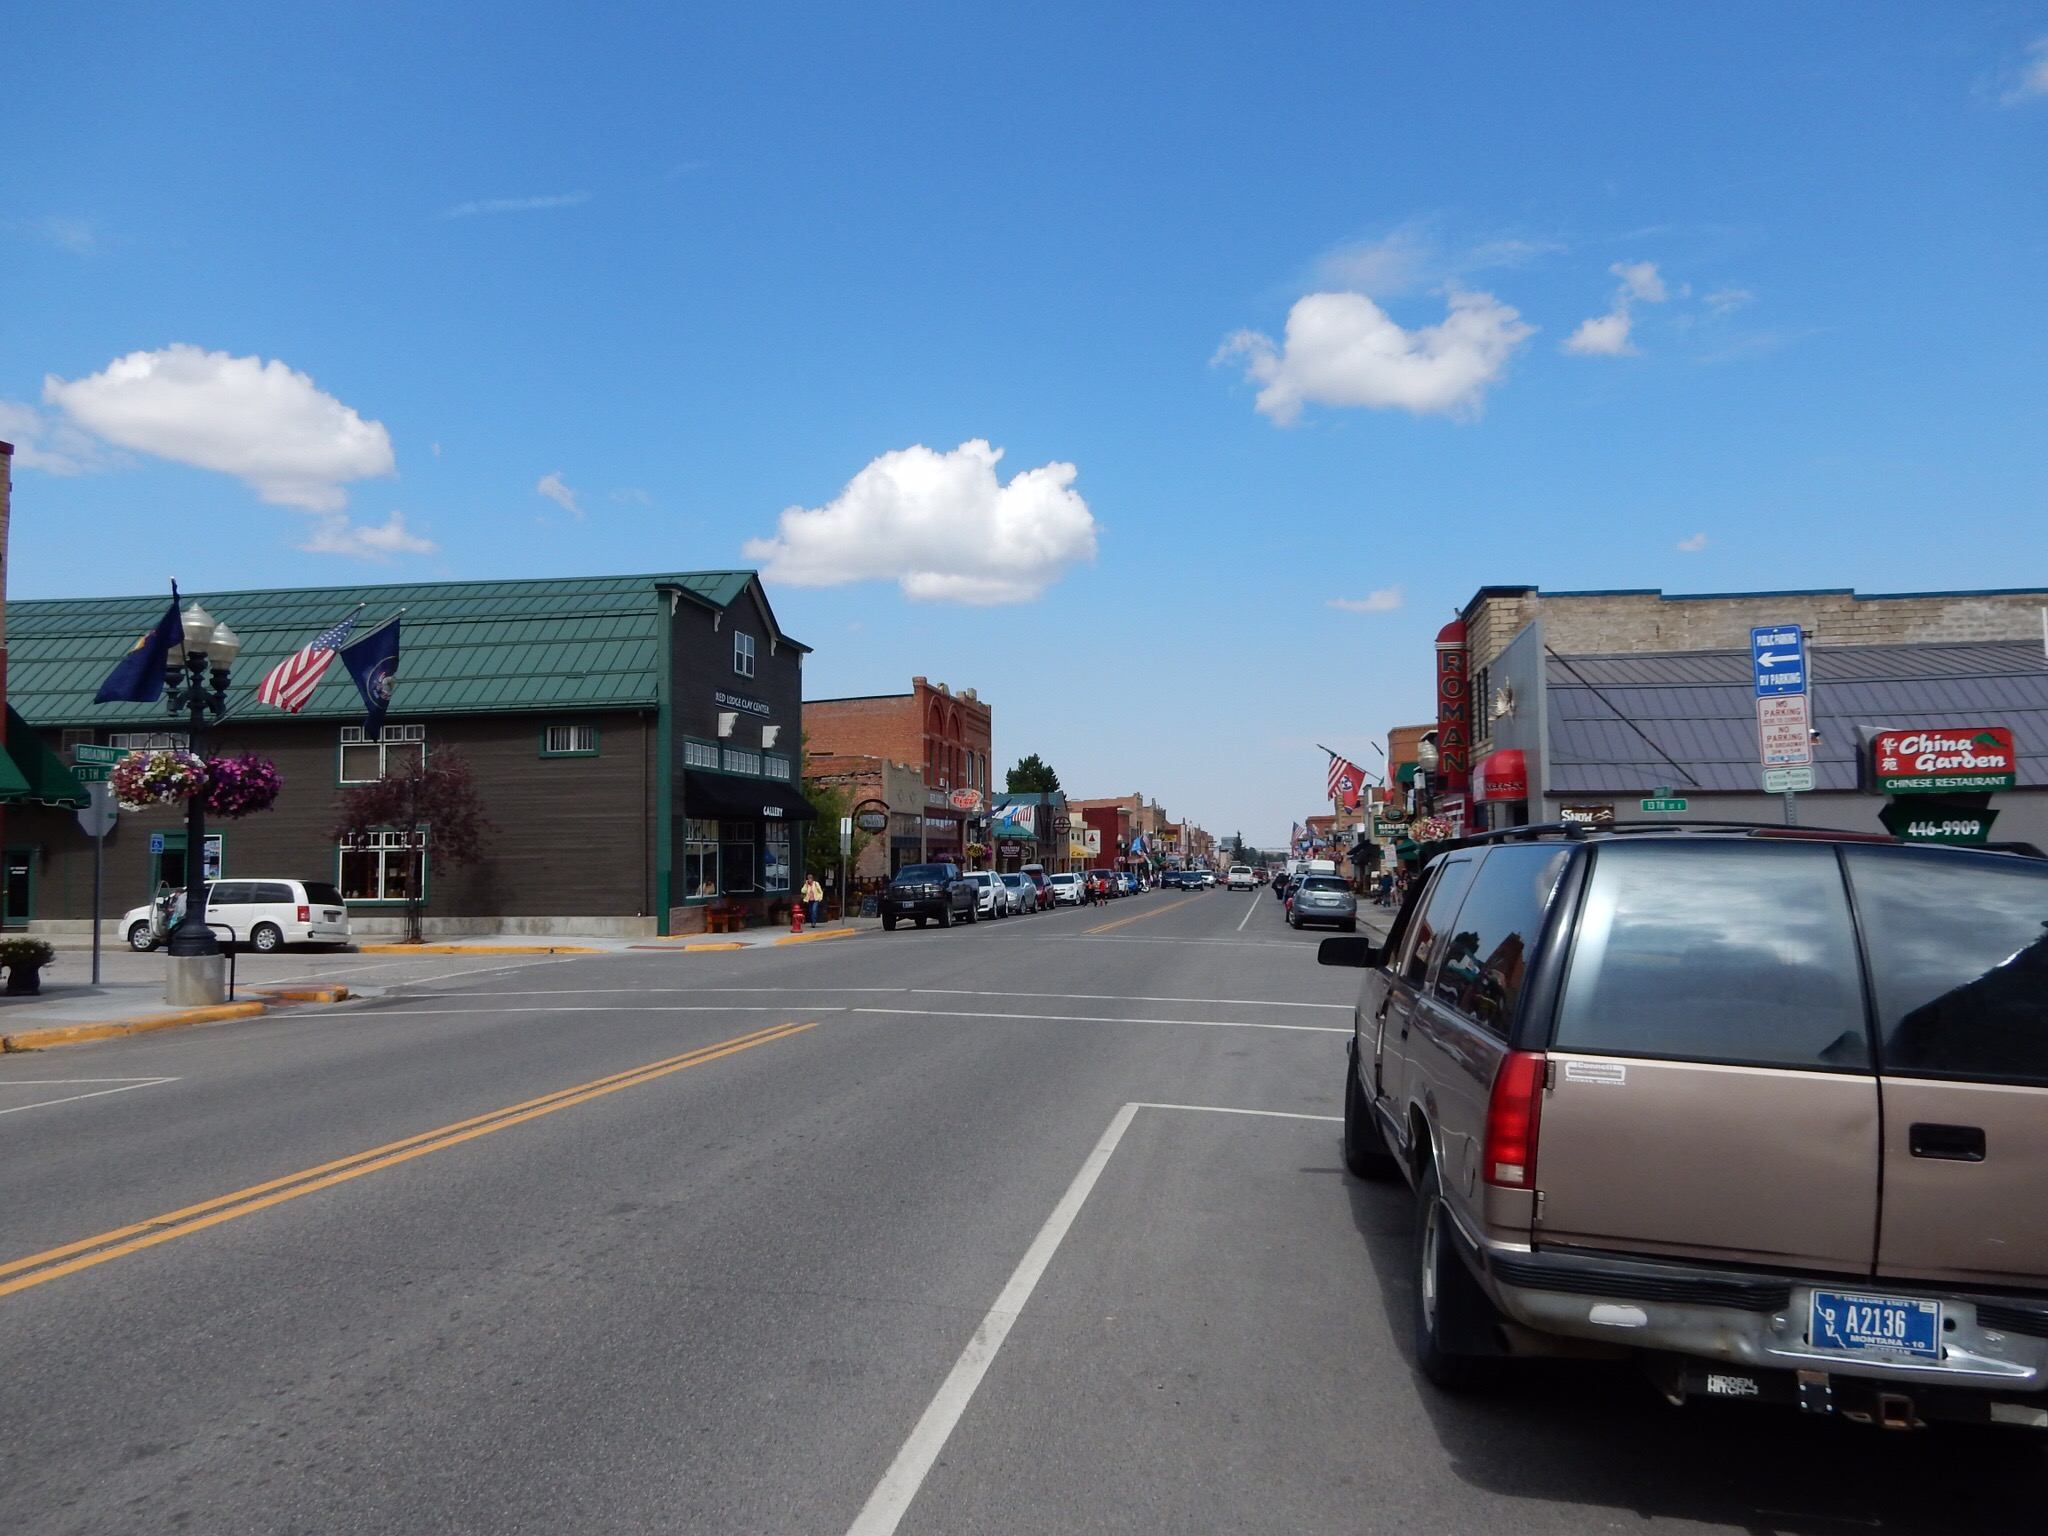 Downtown Red Lodge, Montana.